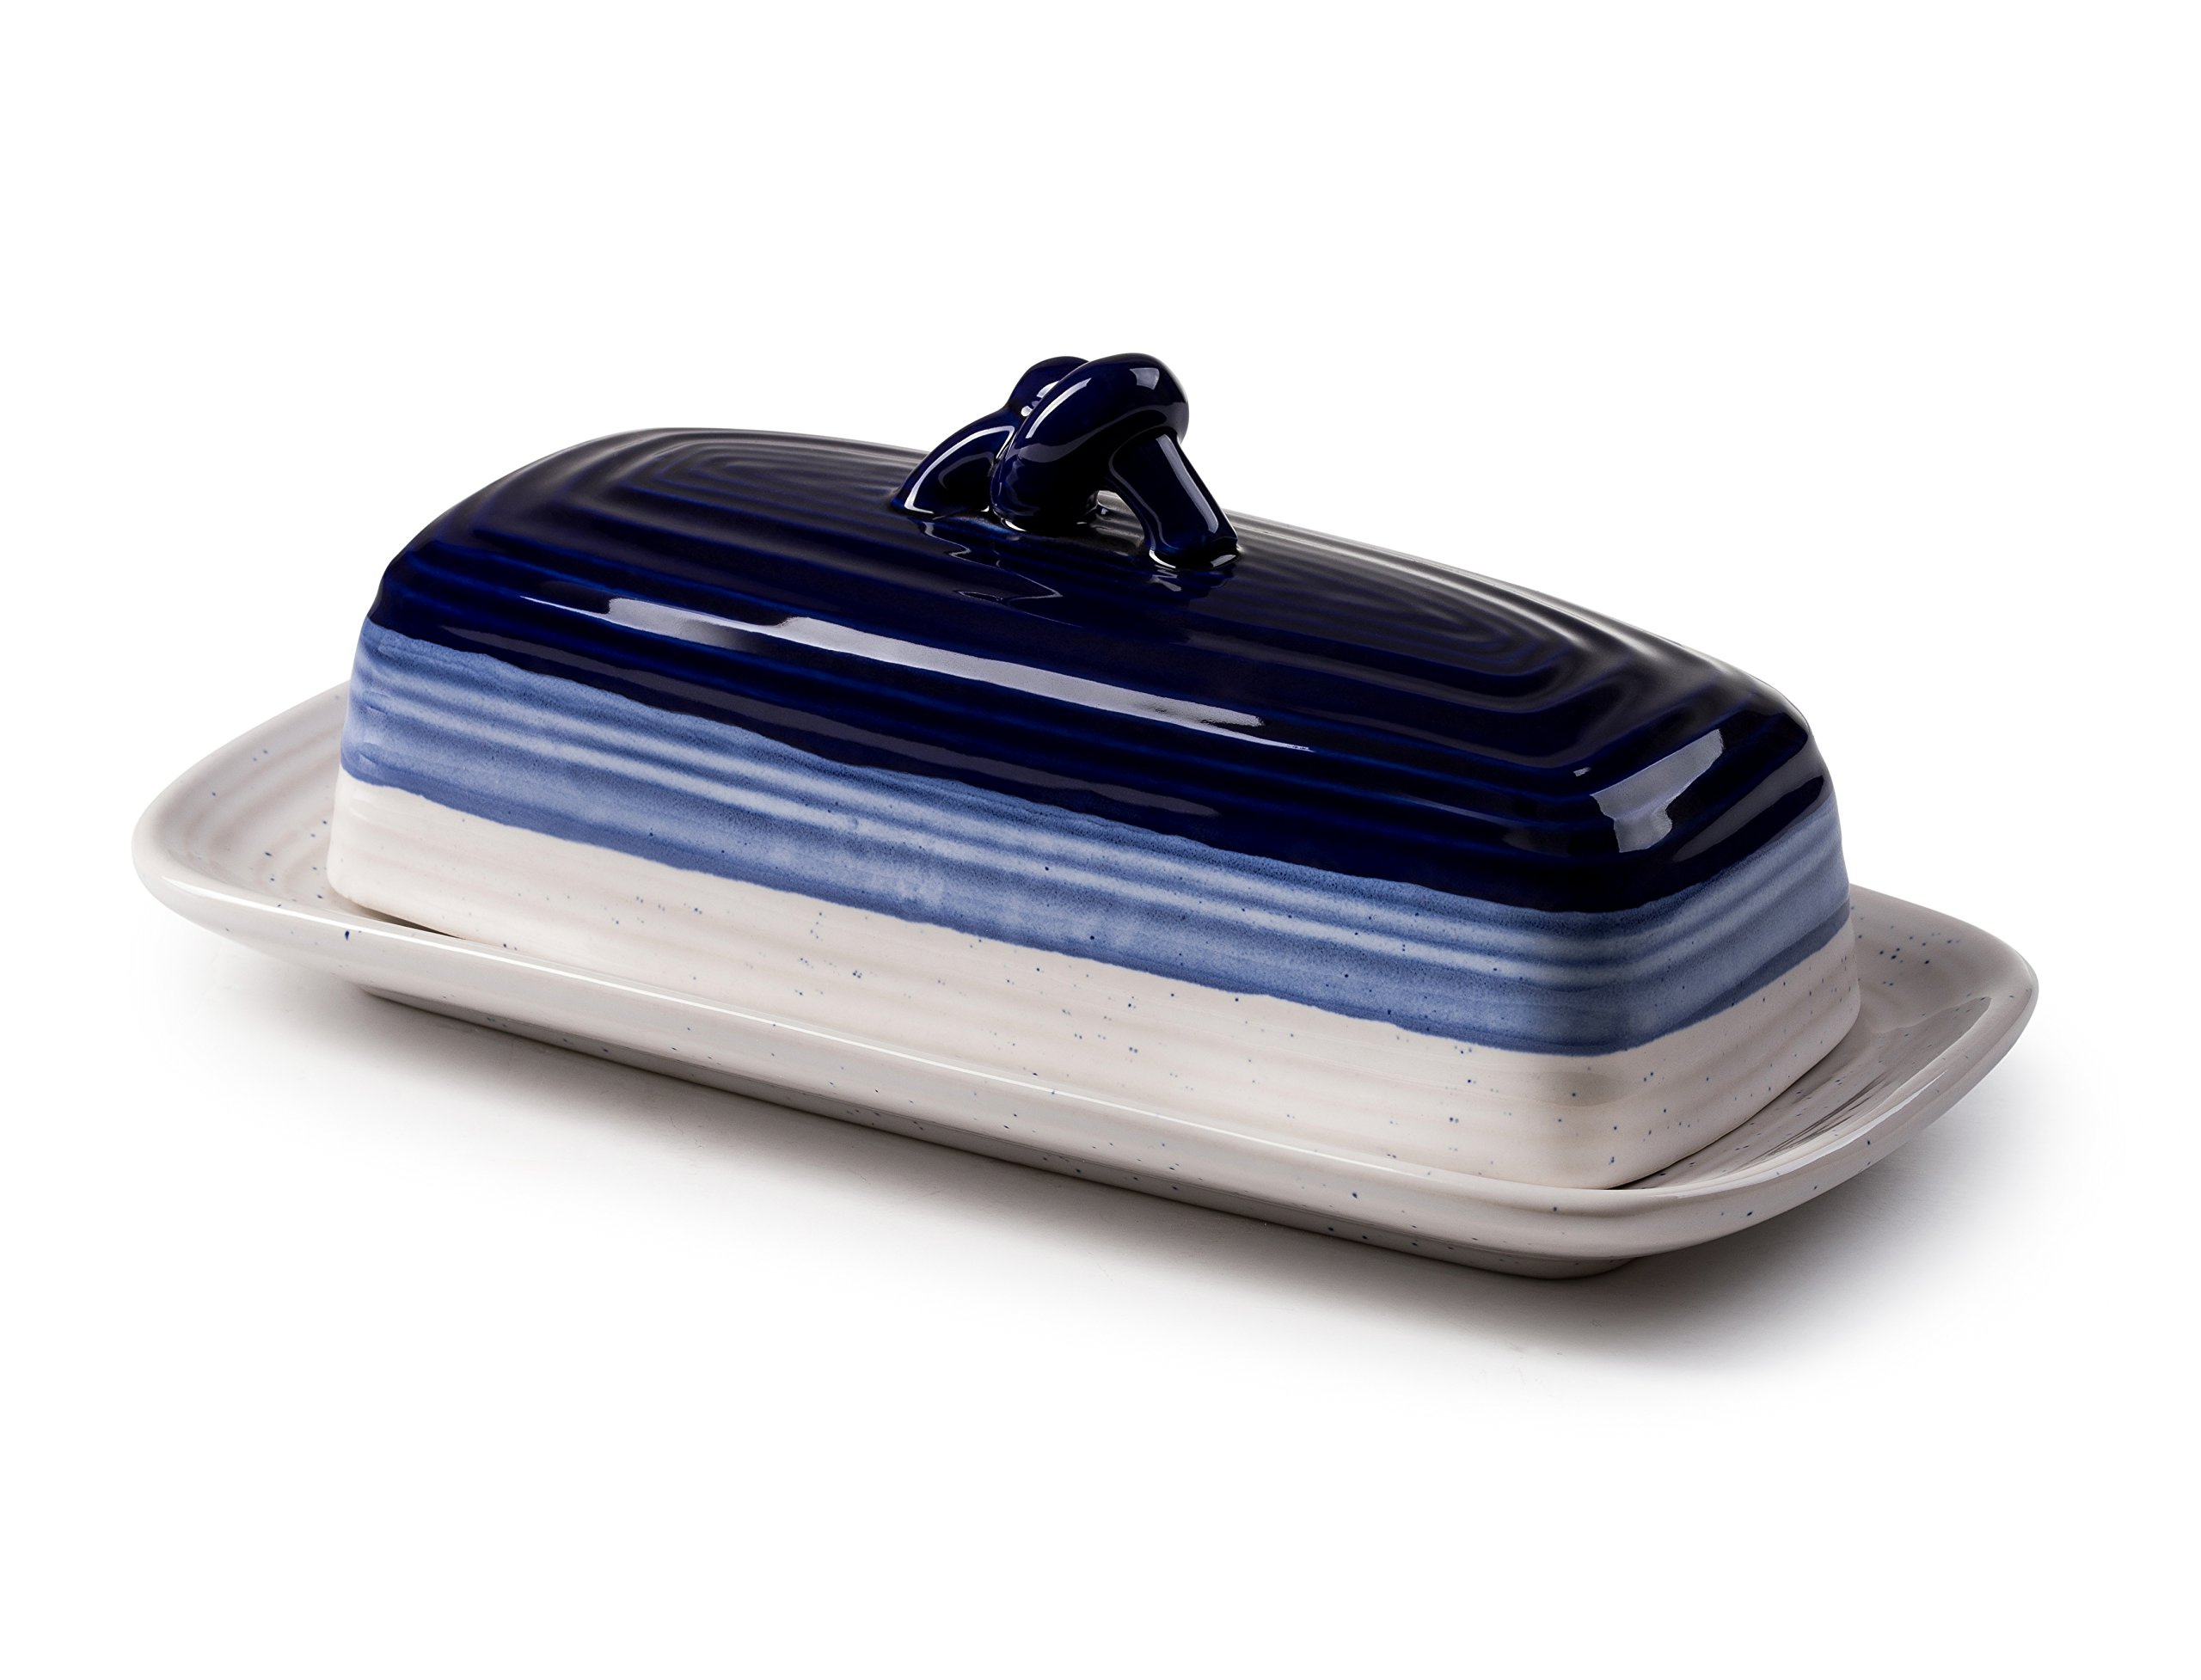 ROSCHER Ceramic Butter Dish (Avalon Blue) 2-Piece Cover and Plate Combo | Rustic, Vintage Kitchen Décor | Decorative, Country Style Look | Counter, Refrigerator, Table